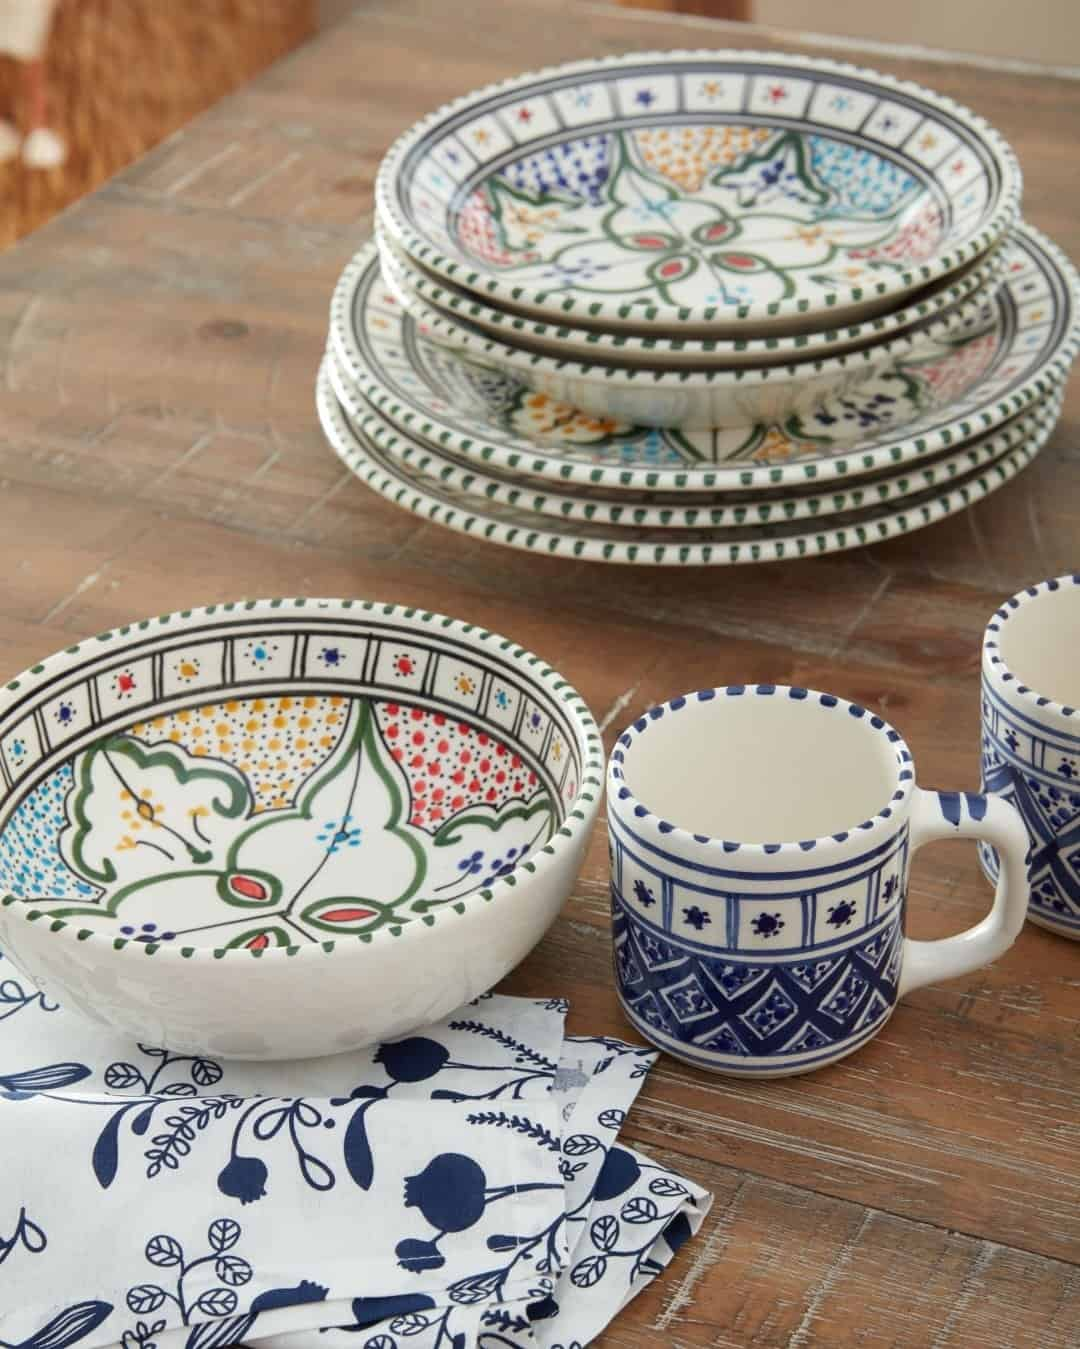 Mosaic dishes on a table